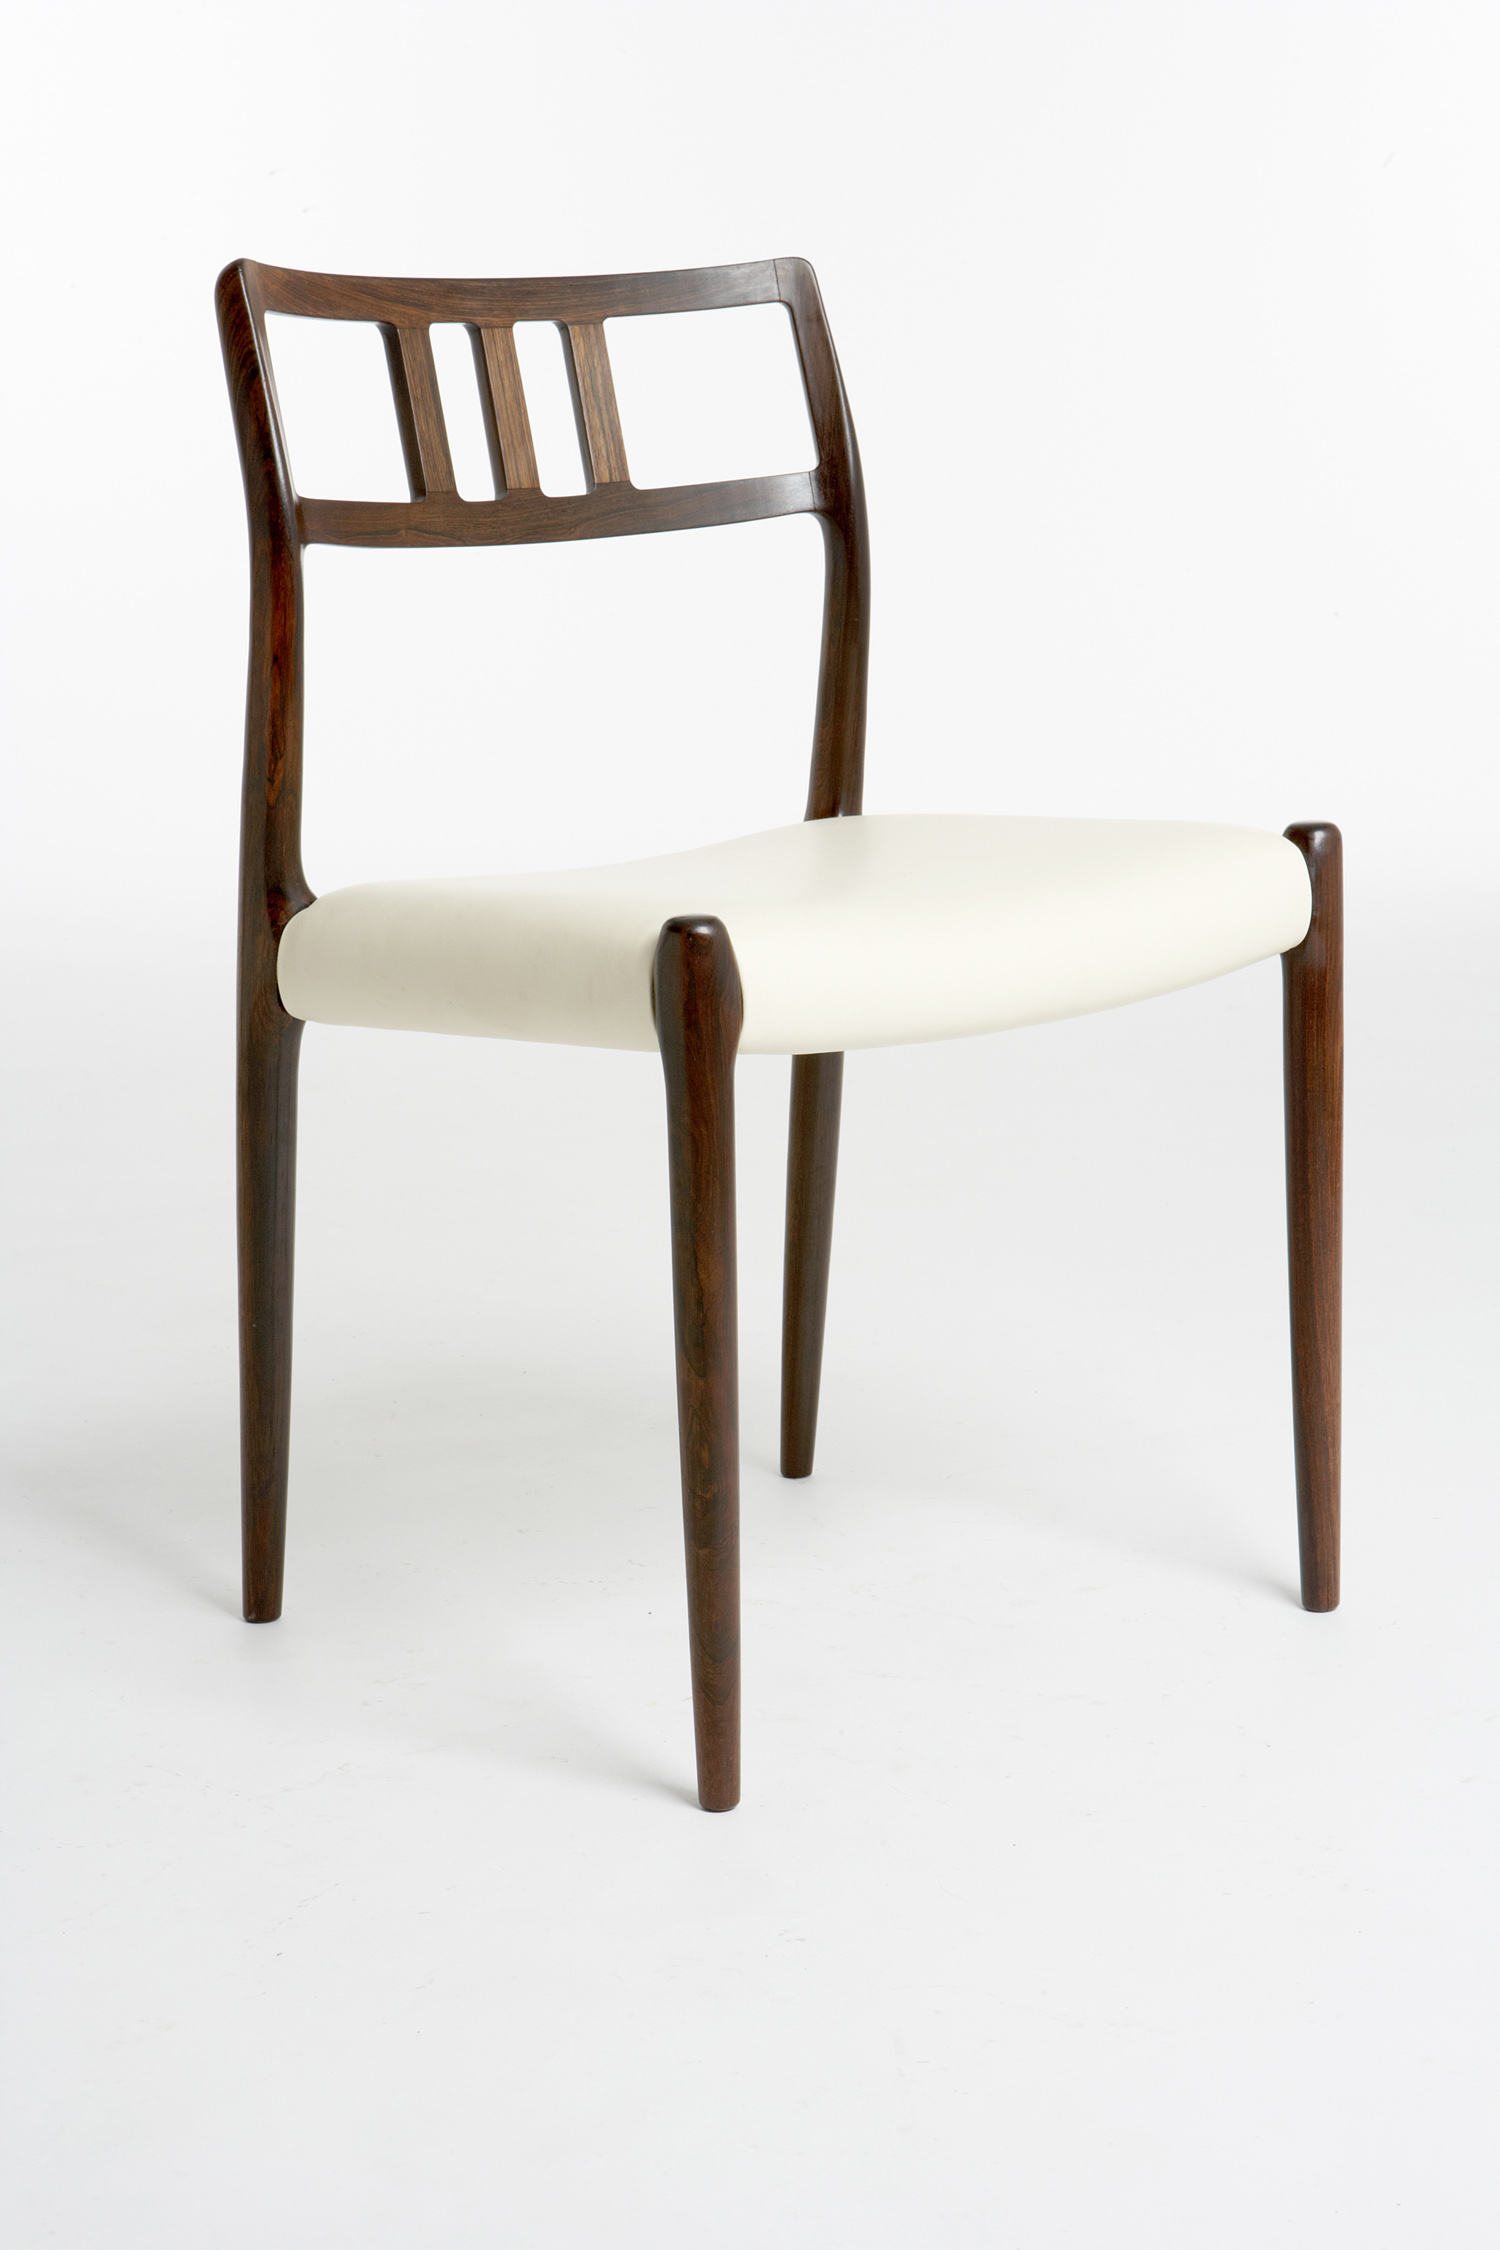 N O Moller 1966Dining Chair   • made 1966-90    •